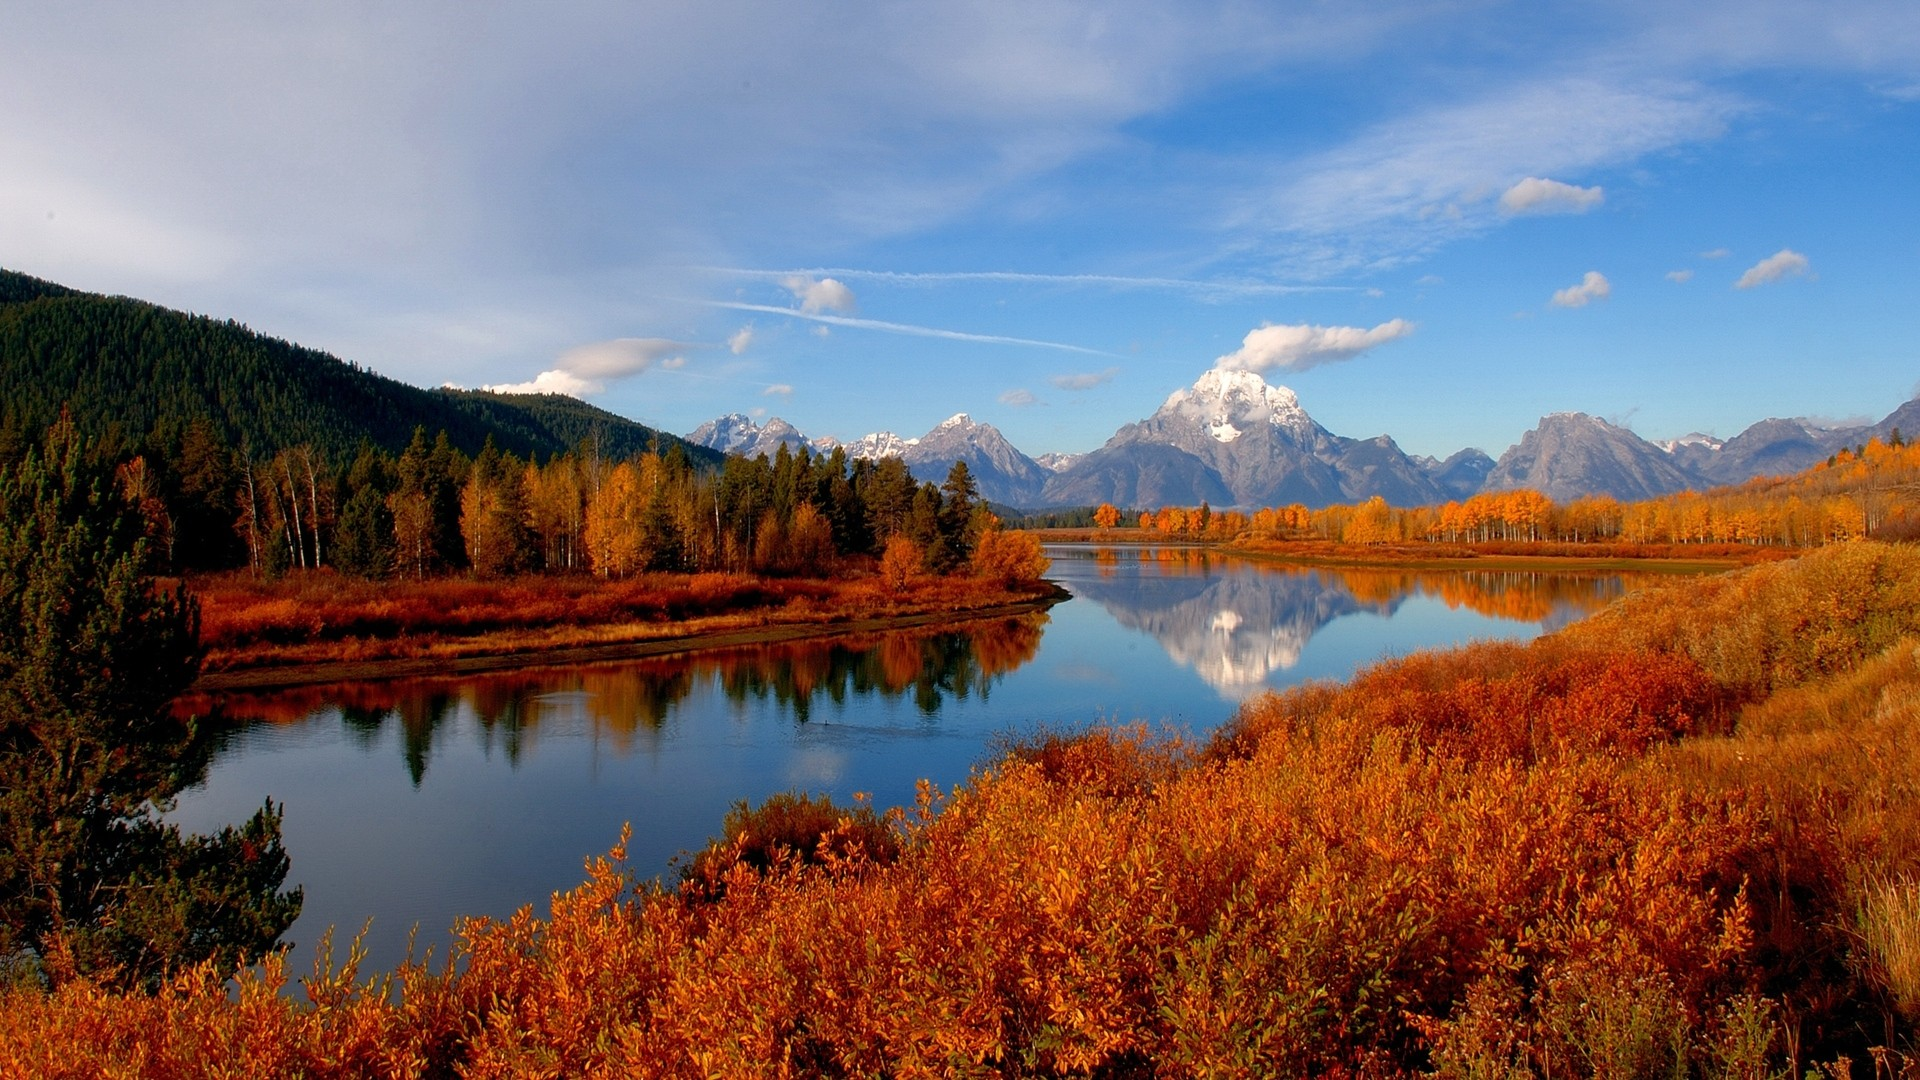 Full HD 1080p Autumn Wallpapers HD, Desktop Backgrounds 1920×1080, Images  and Pictures